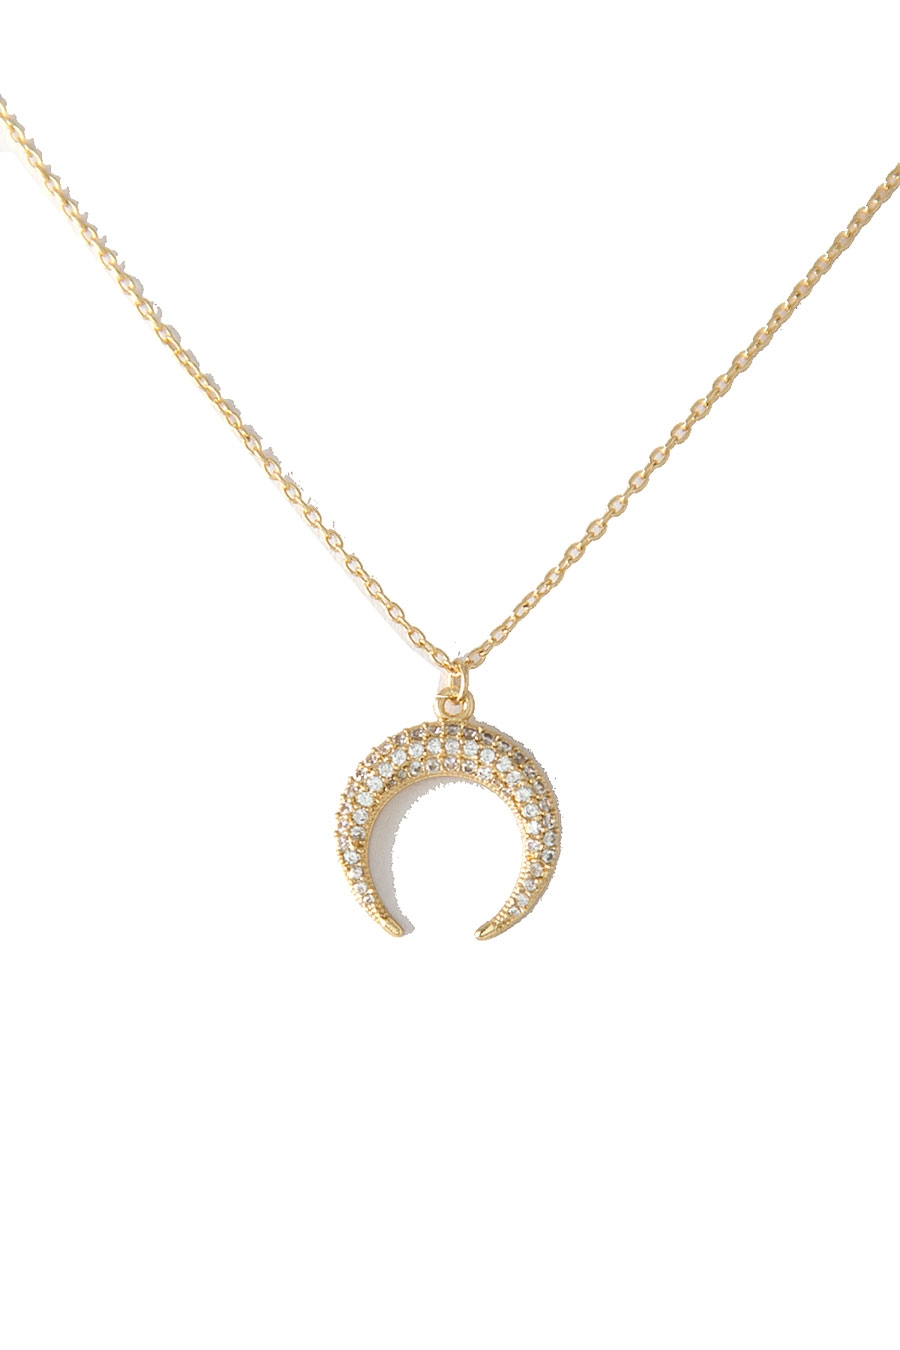 CZ HORN PAVE NECKLACE - orangeshine.com